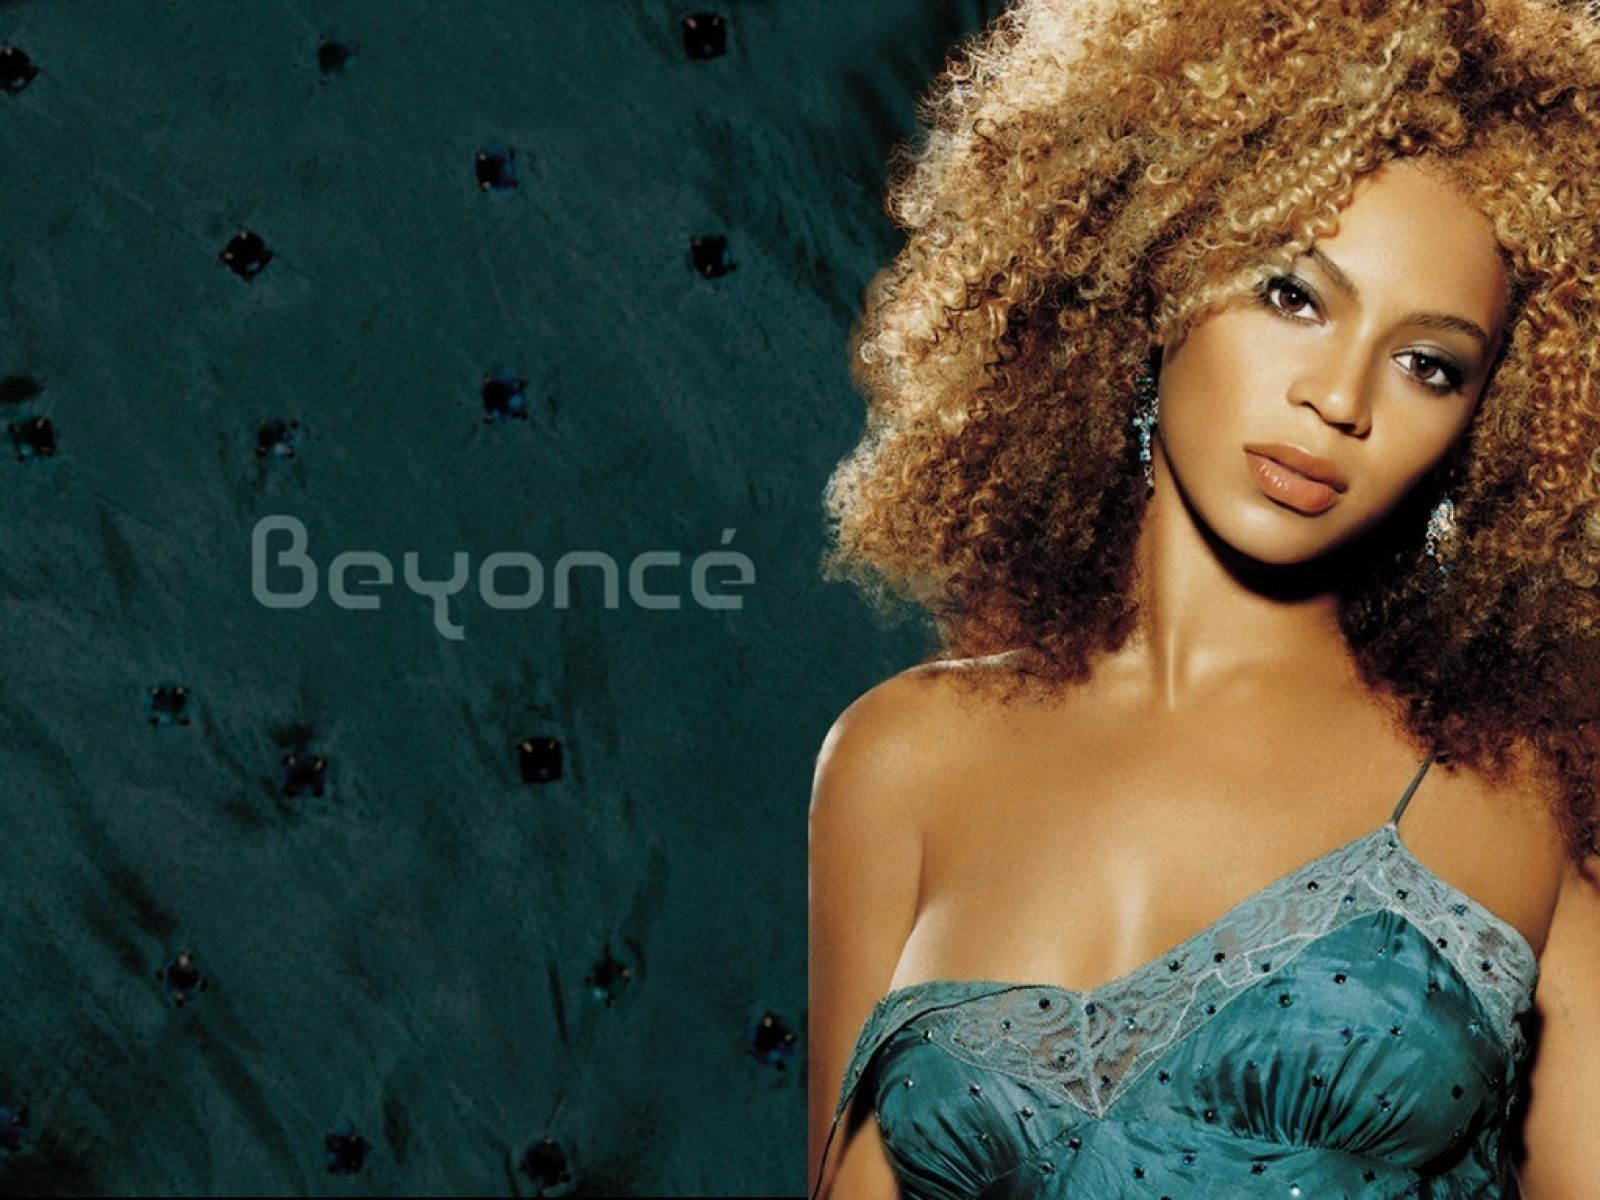 1600x1200 Beyonce big hair Wallpaper at Wallpaperist